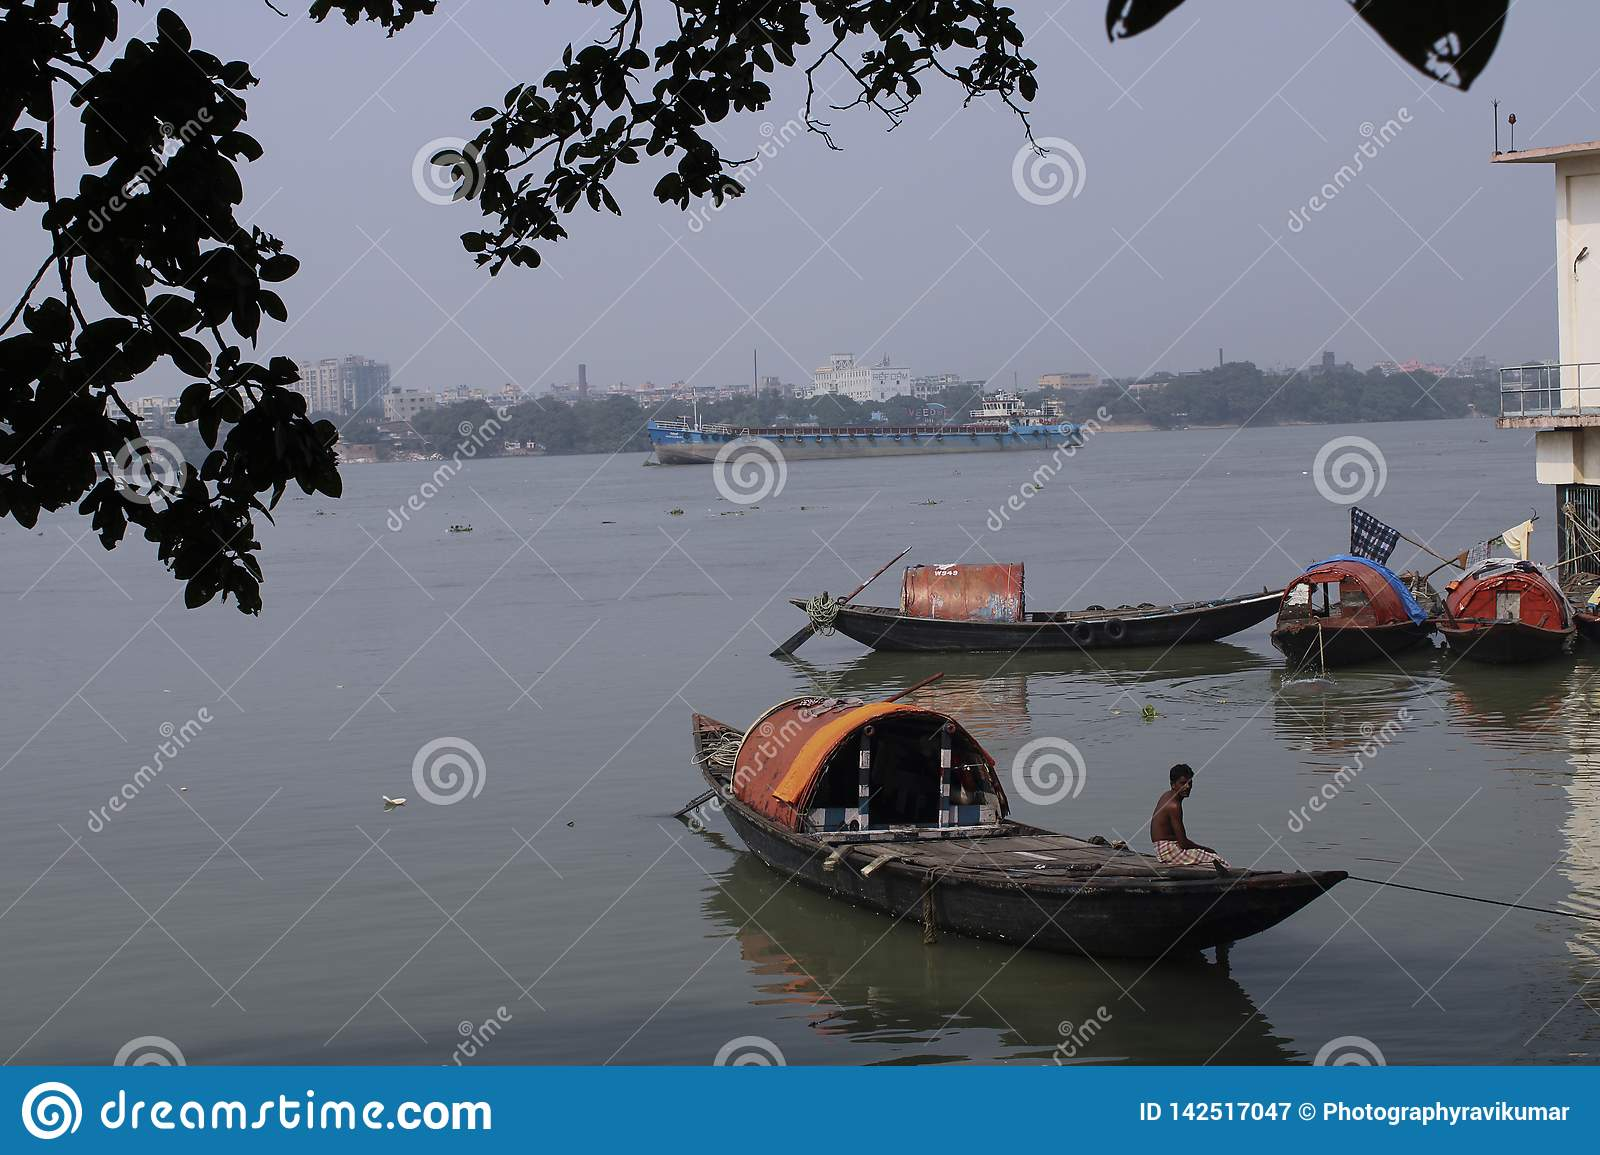 Fishing boat on the River Ganges